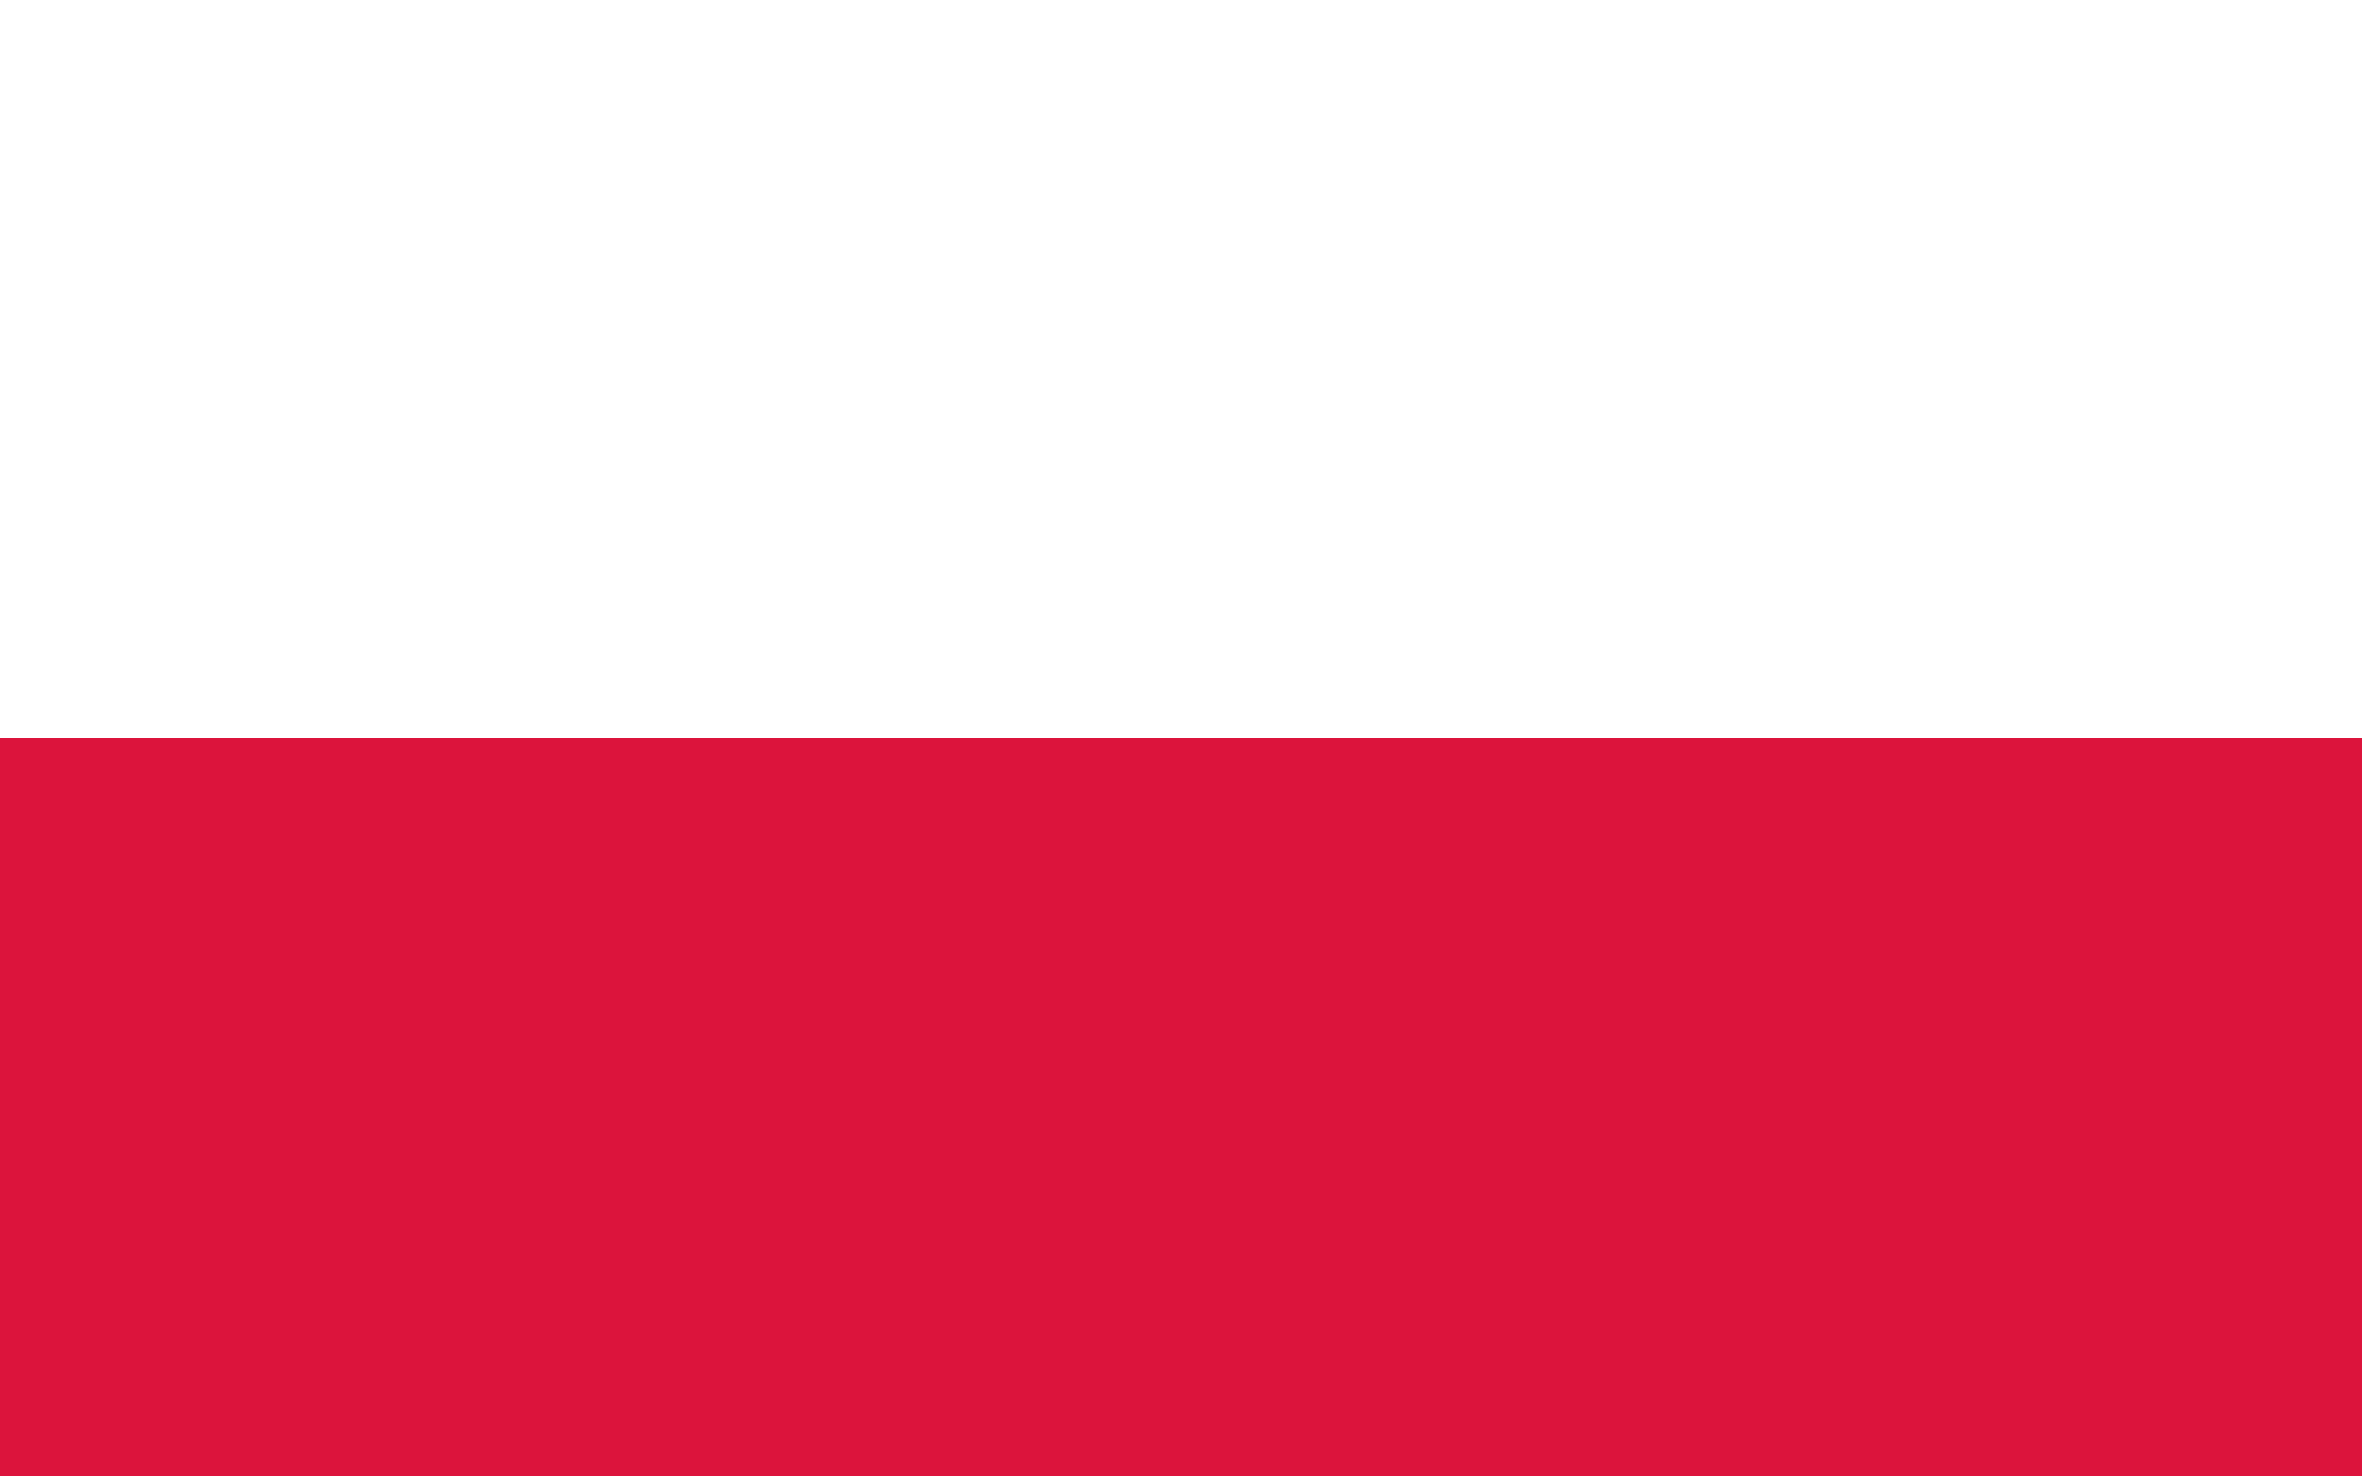 Poland PNG